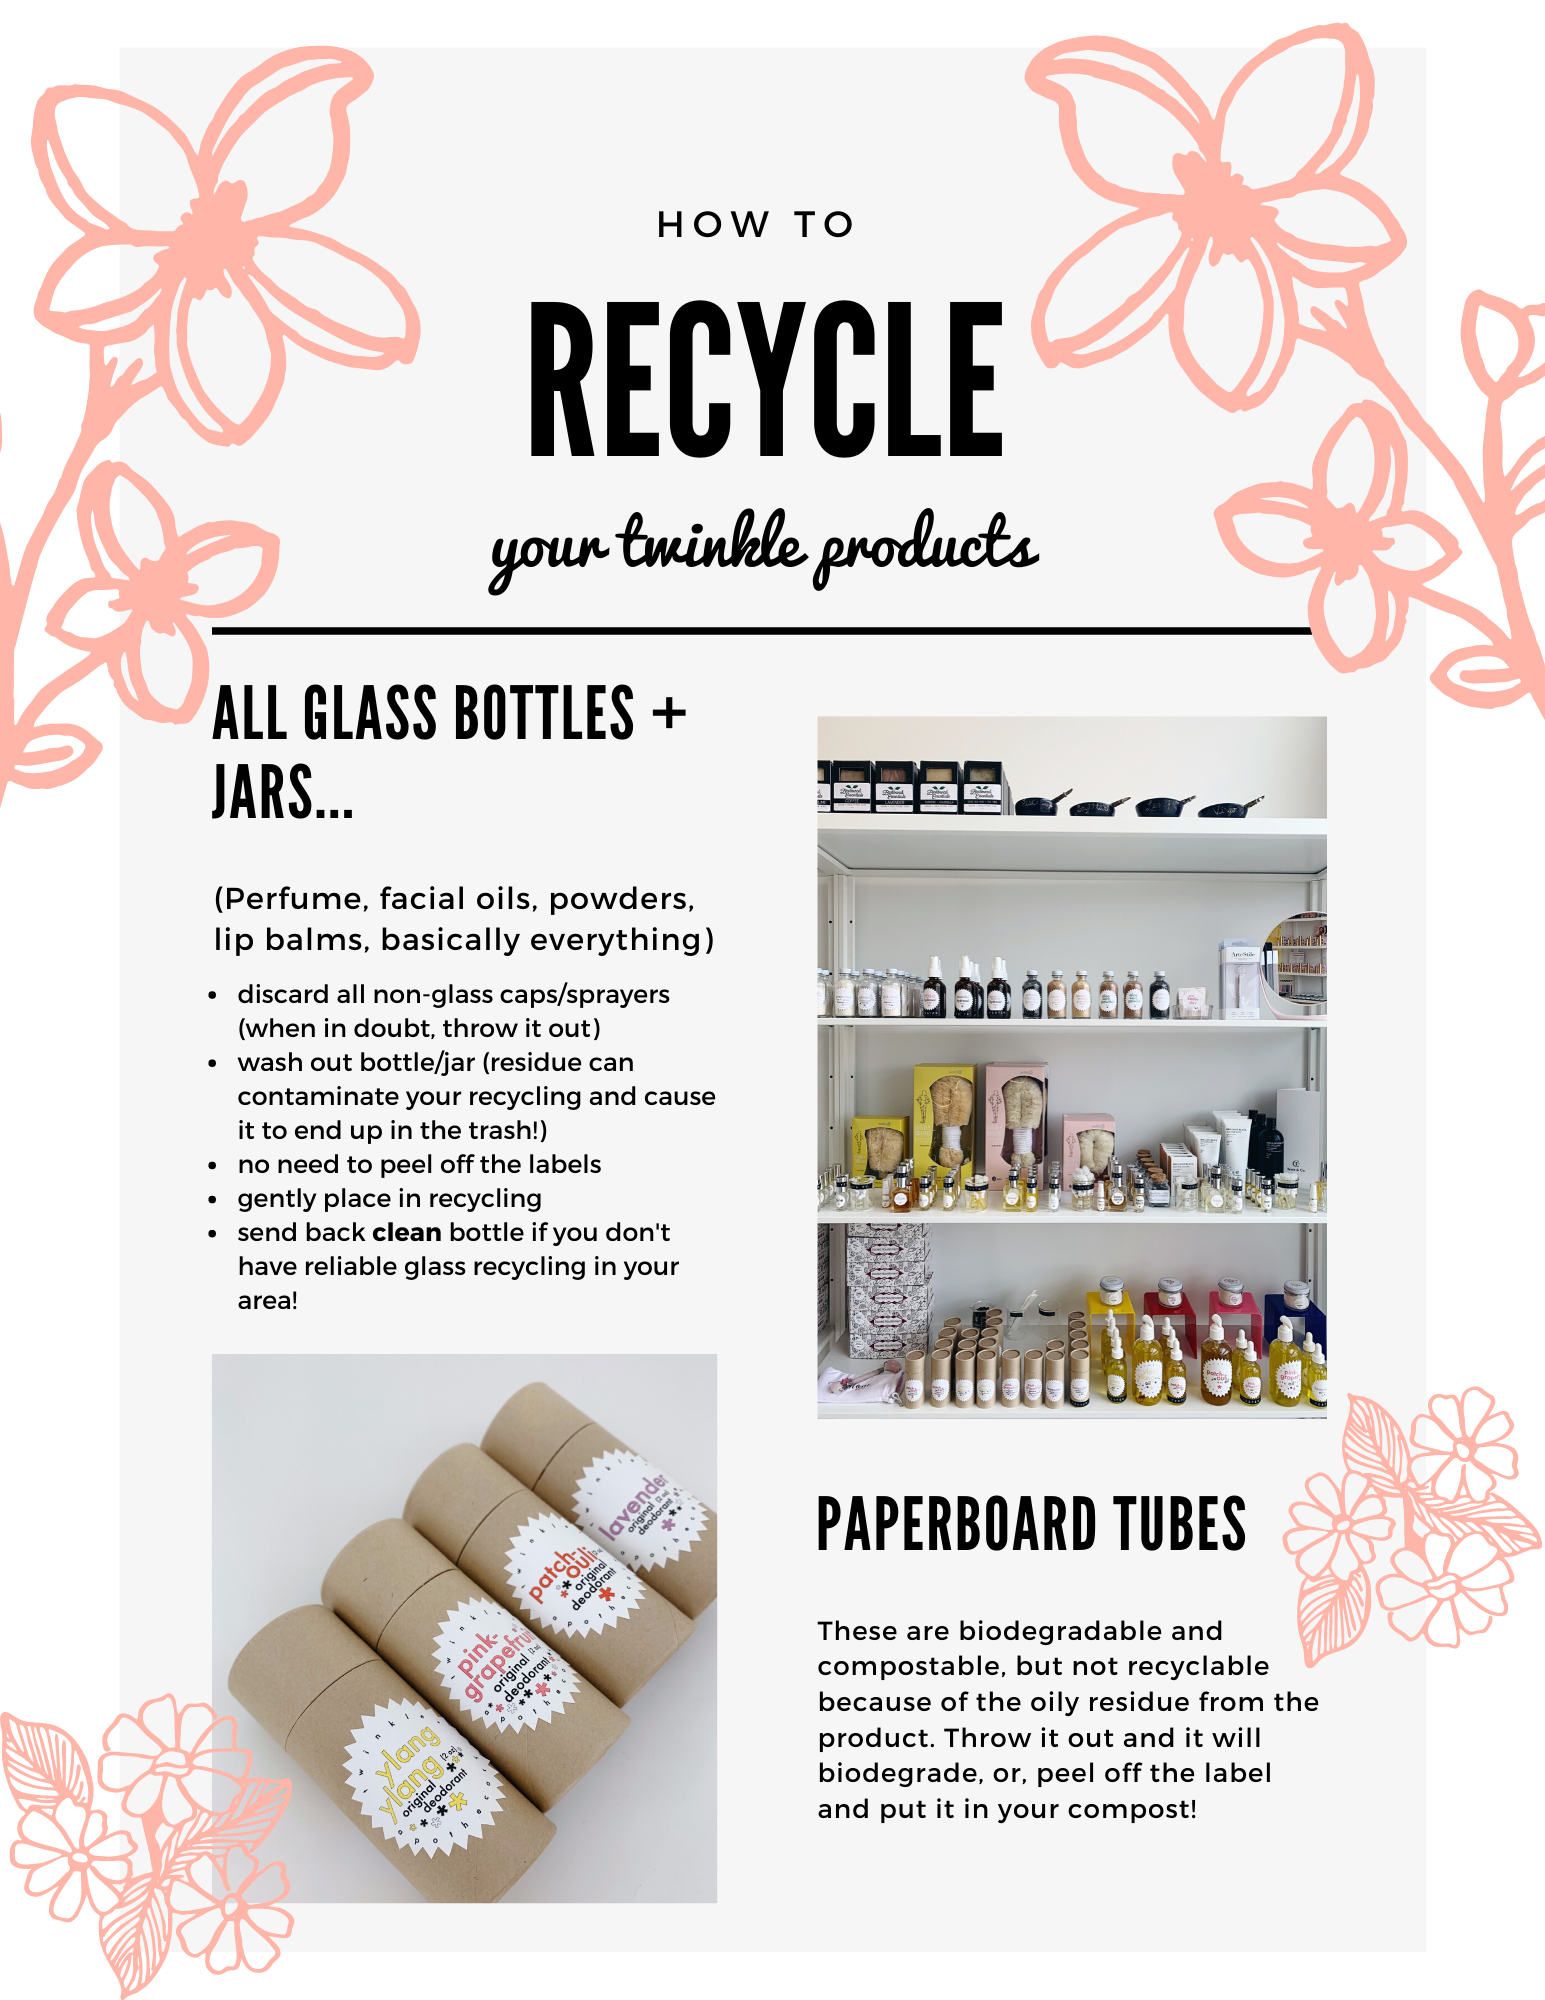 recycling guide twinkle apothecary